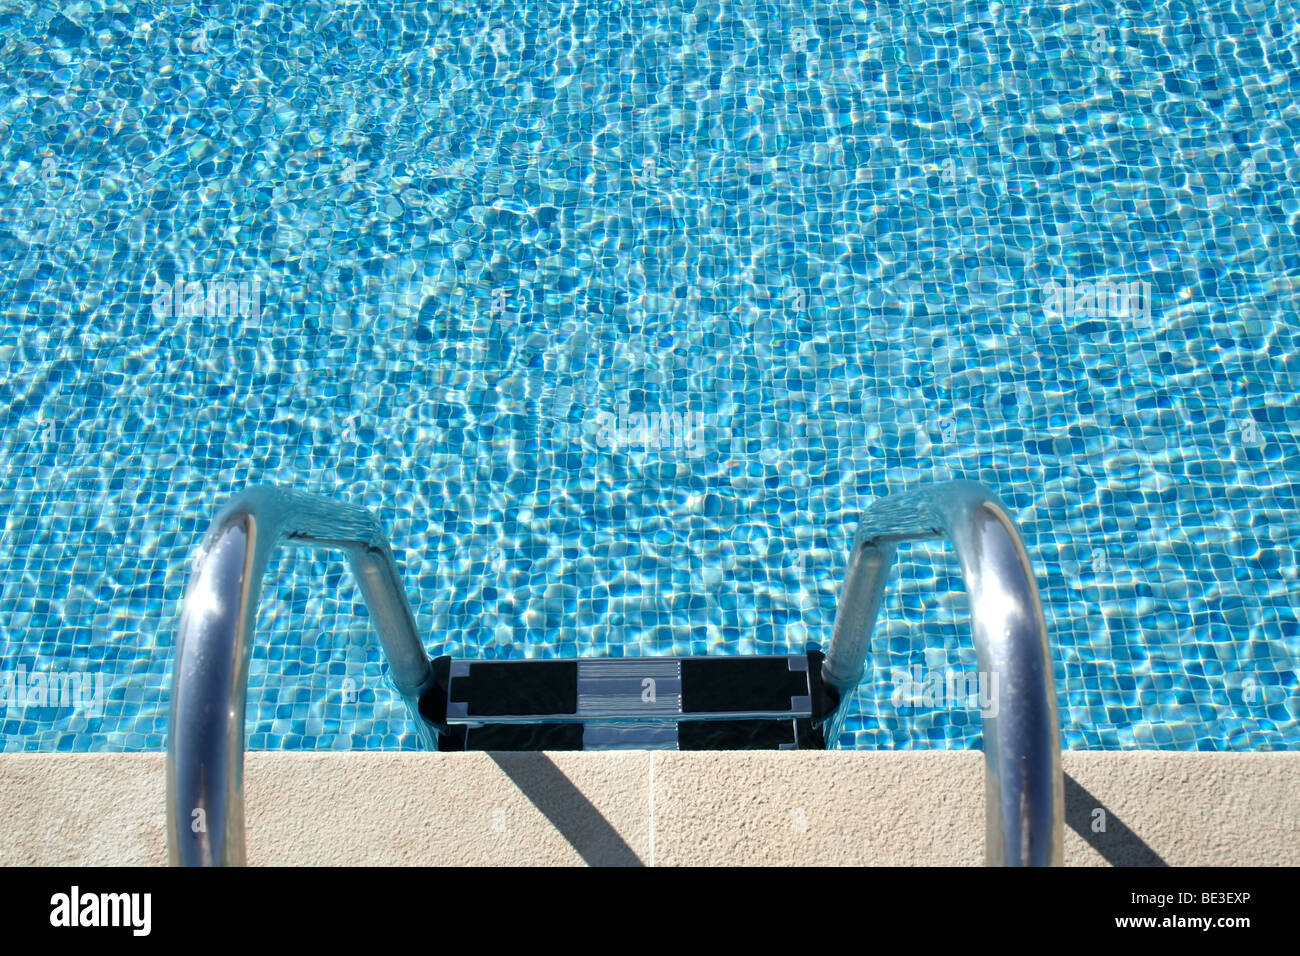 Hotel swimming pool with sunny reflections, great for summer and vacations themes and backgrounds - Stock Image